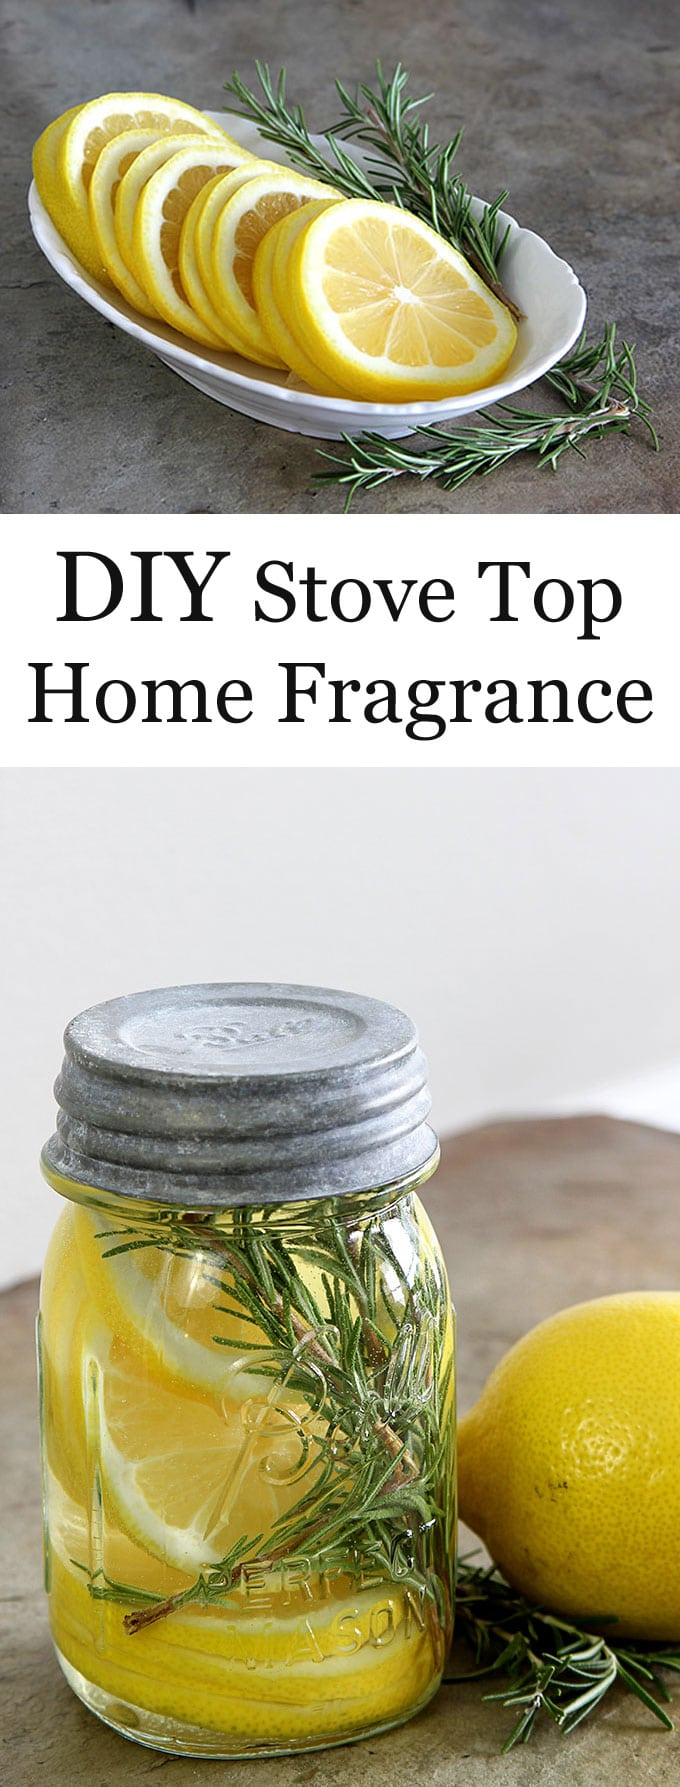 Learn how to make a DIY Stove Top Home Fragrance with just a few ingredients. A quick and easy potpourri recipe to make your home smell fresh and cozy! #homefragrances #roomscent #diyproject #diy #allnatural #potpourri